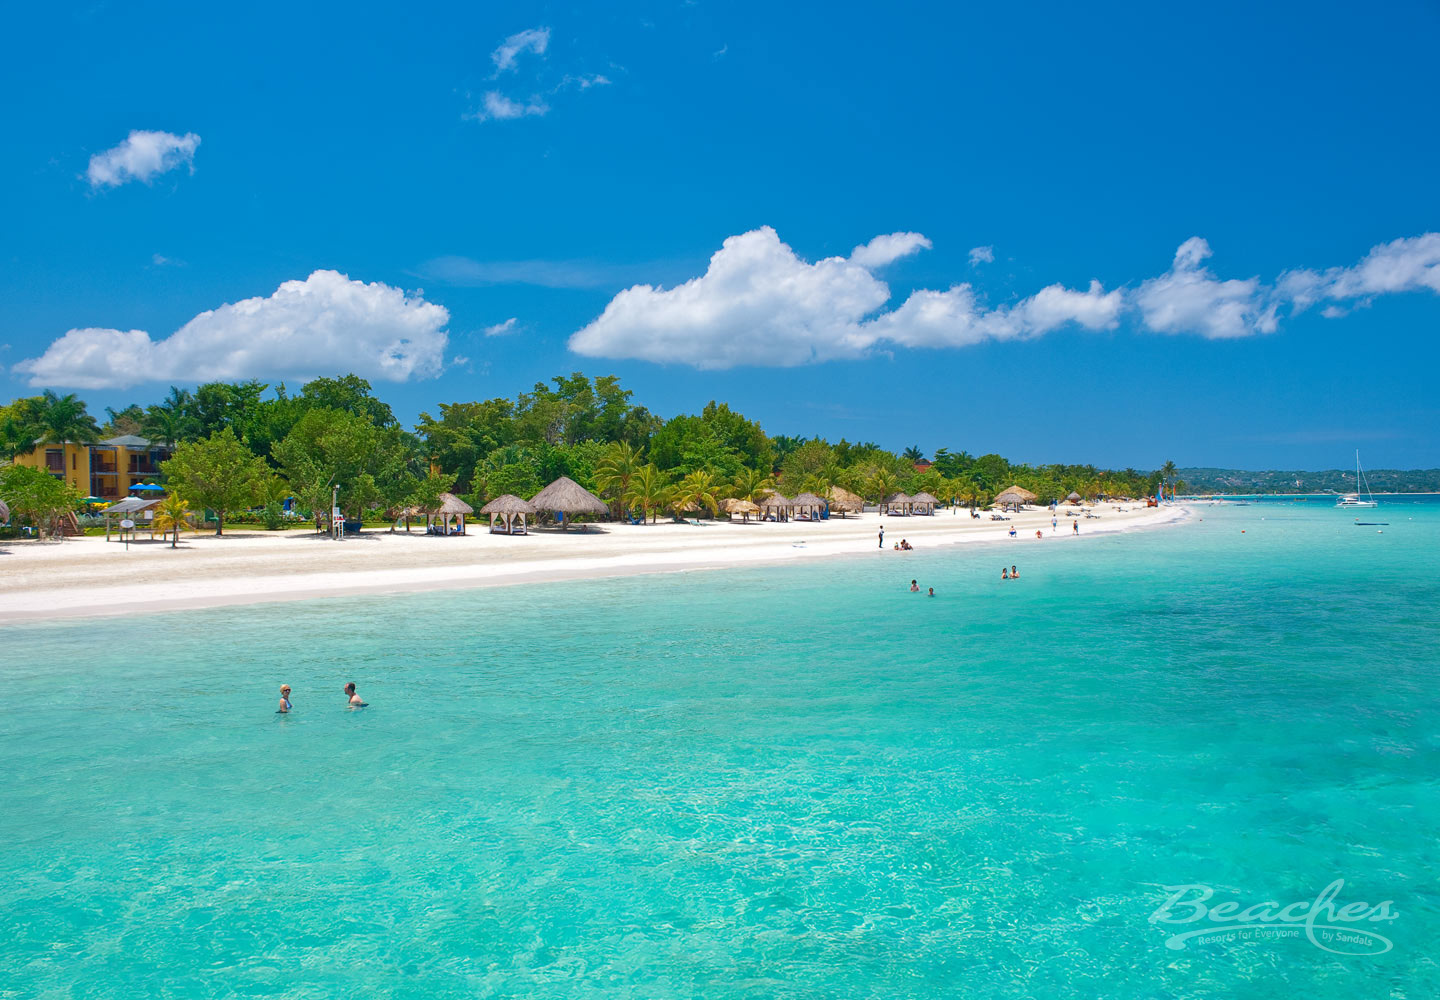 Travel Agency All-Inclusive Resort Beaches Negril 004